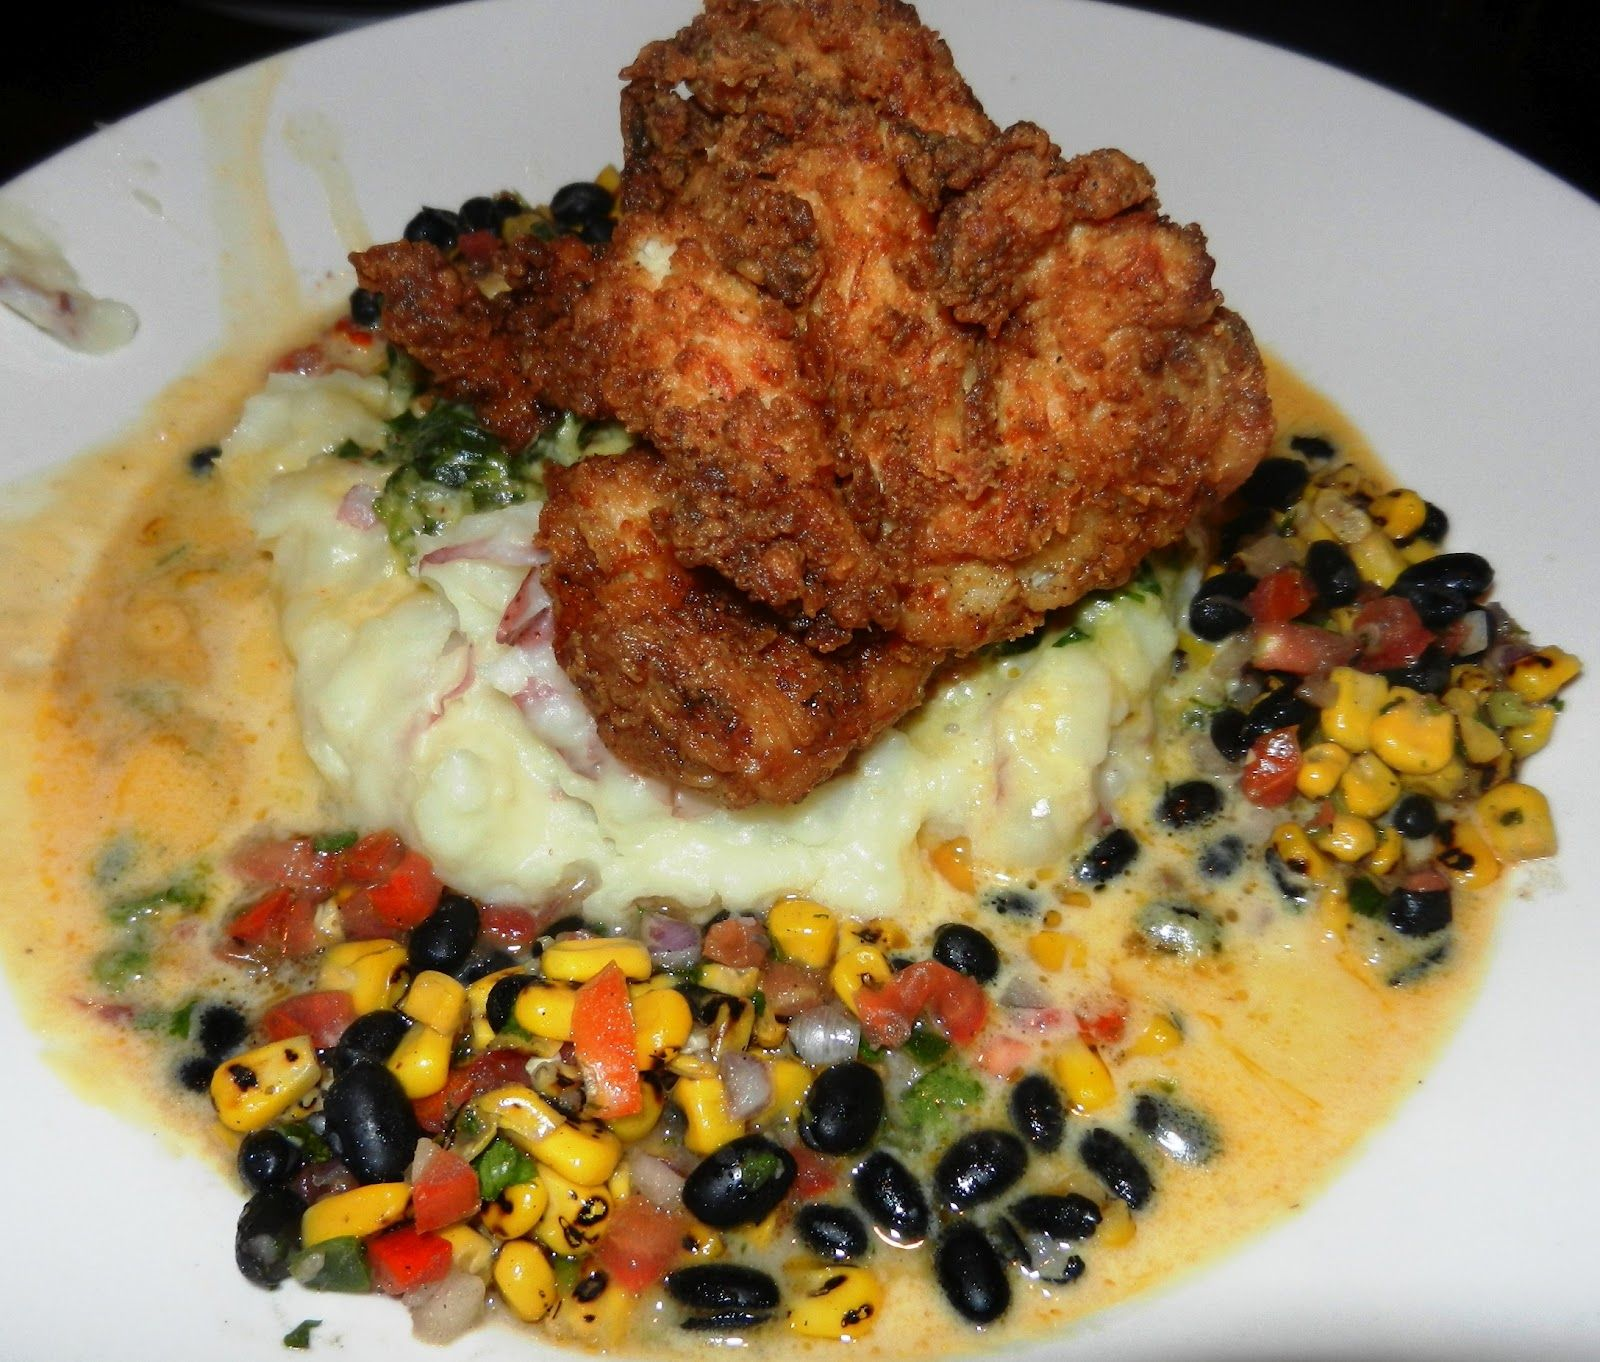 Buttermilk Fried Chicken Bahama Breeze My Absolute Fave That Sauce Is Soo Good With The Mashed Potatoe Recipes Buttermilk Fried Chicken Restaurant Recipes